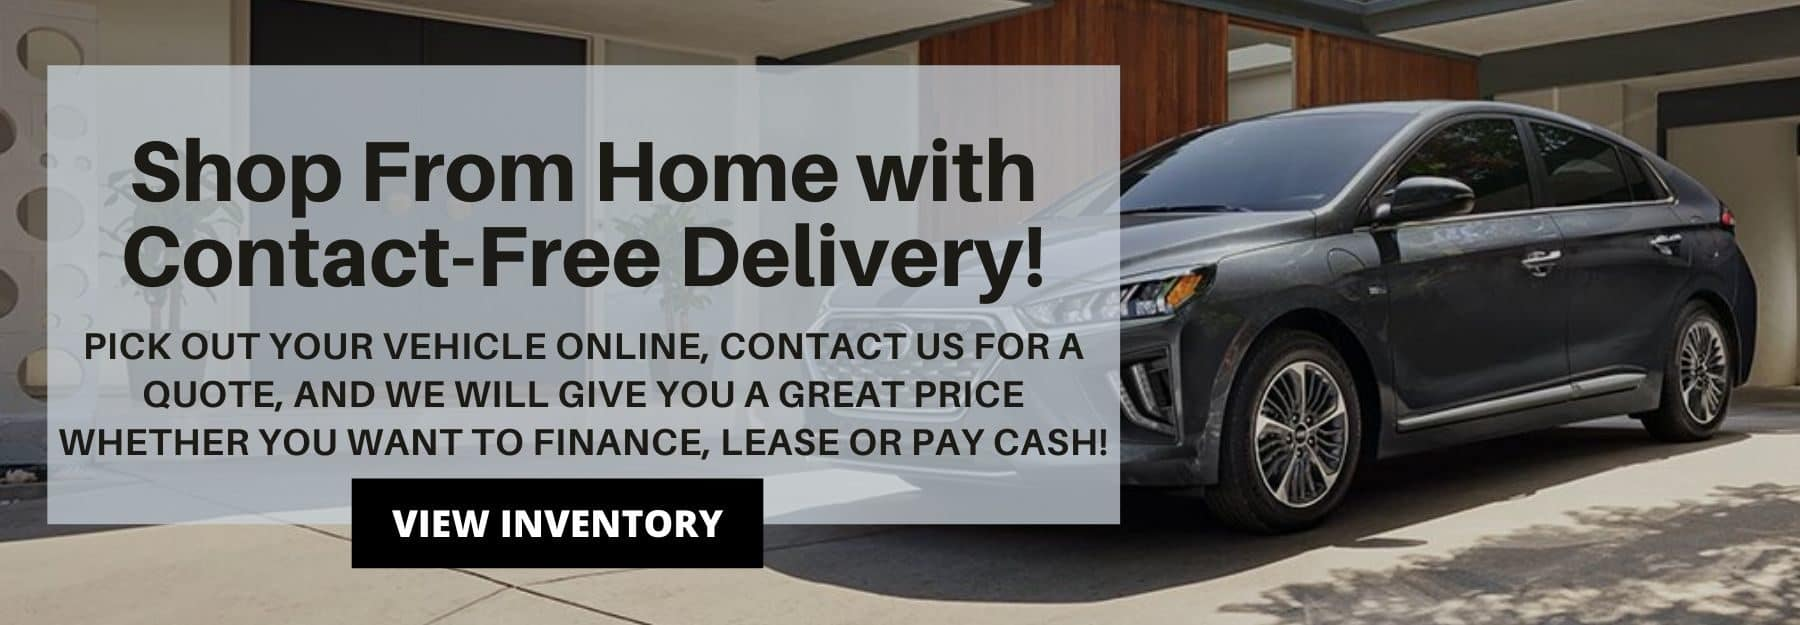 Now offering Free Home Delivery